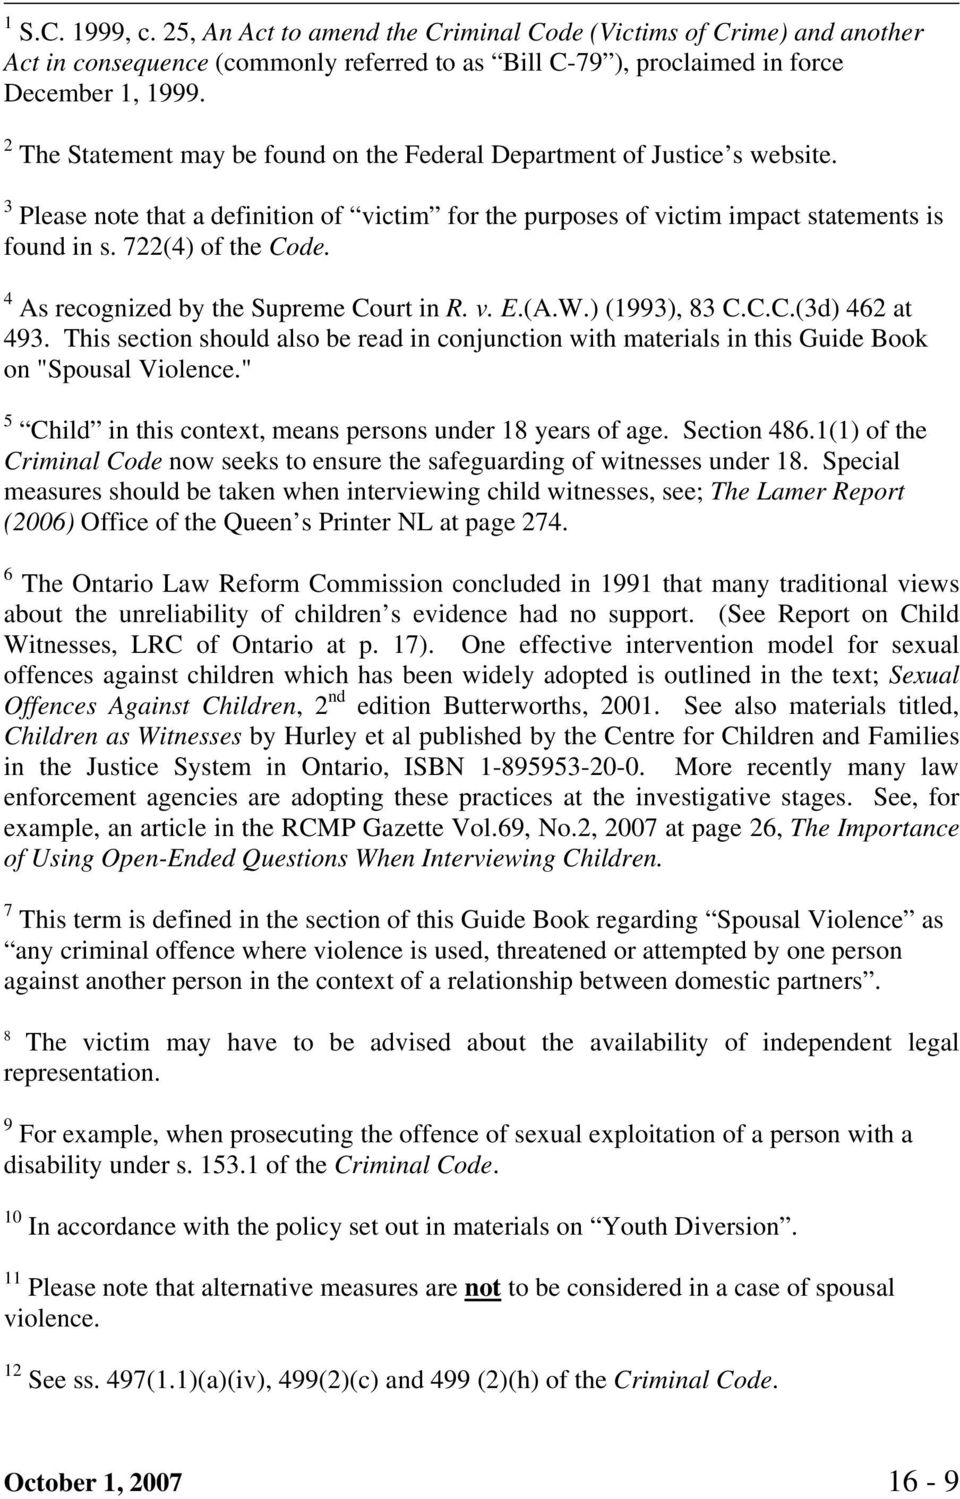 "4 As recognized by the Supreme Court in R. v. E.(A.W.) (1993), 83 C.C.C.(3d) 462 at 493. This section should also be read in conjunction with materials in this Guide Book on ""Spousal Violence."